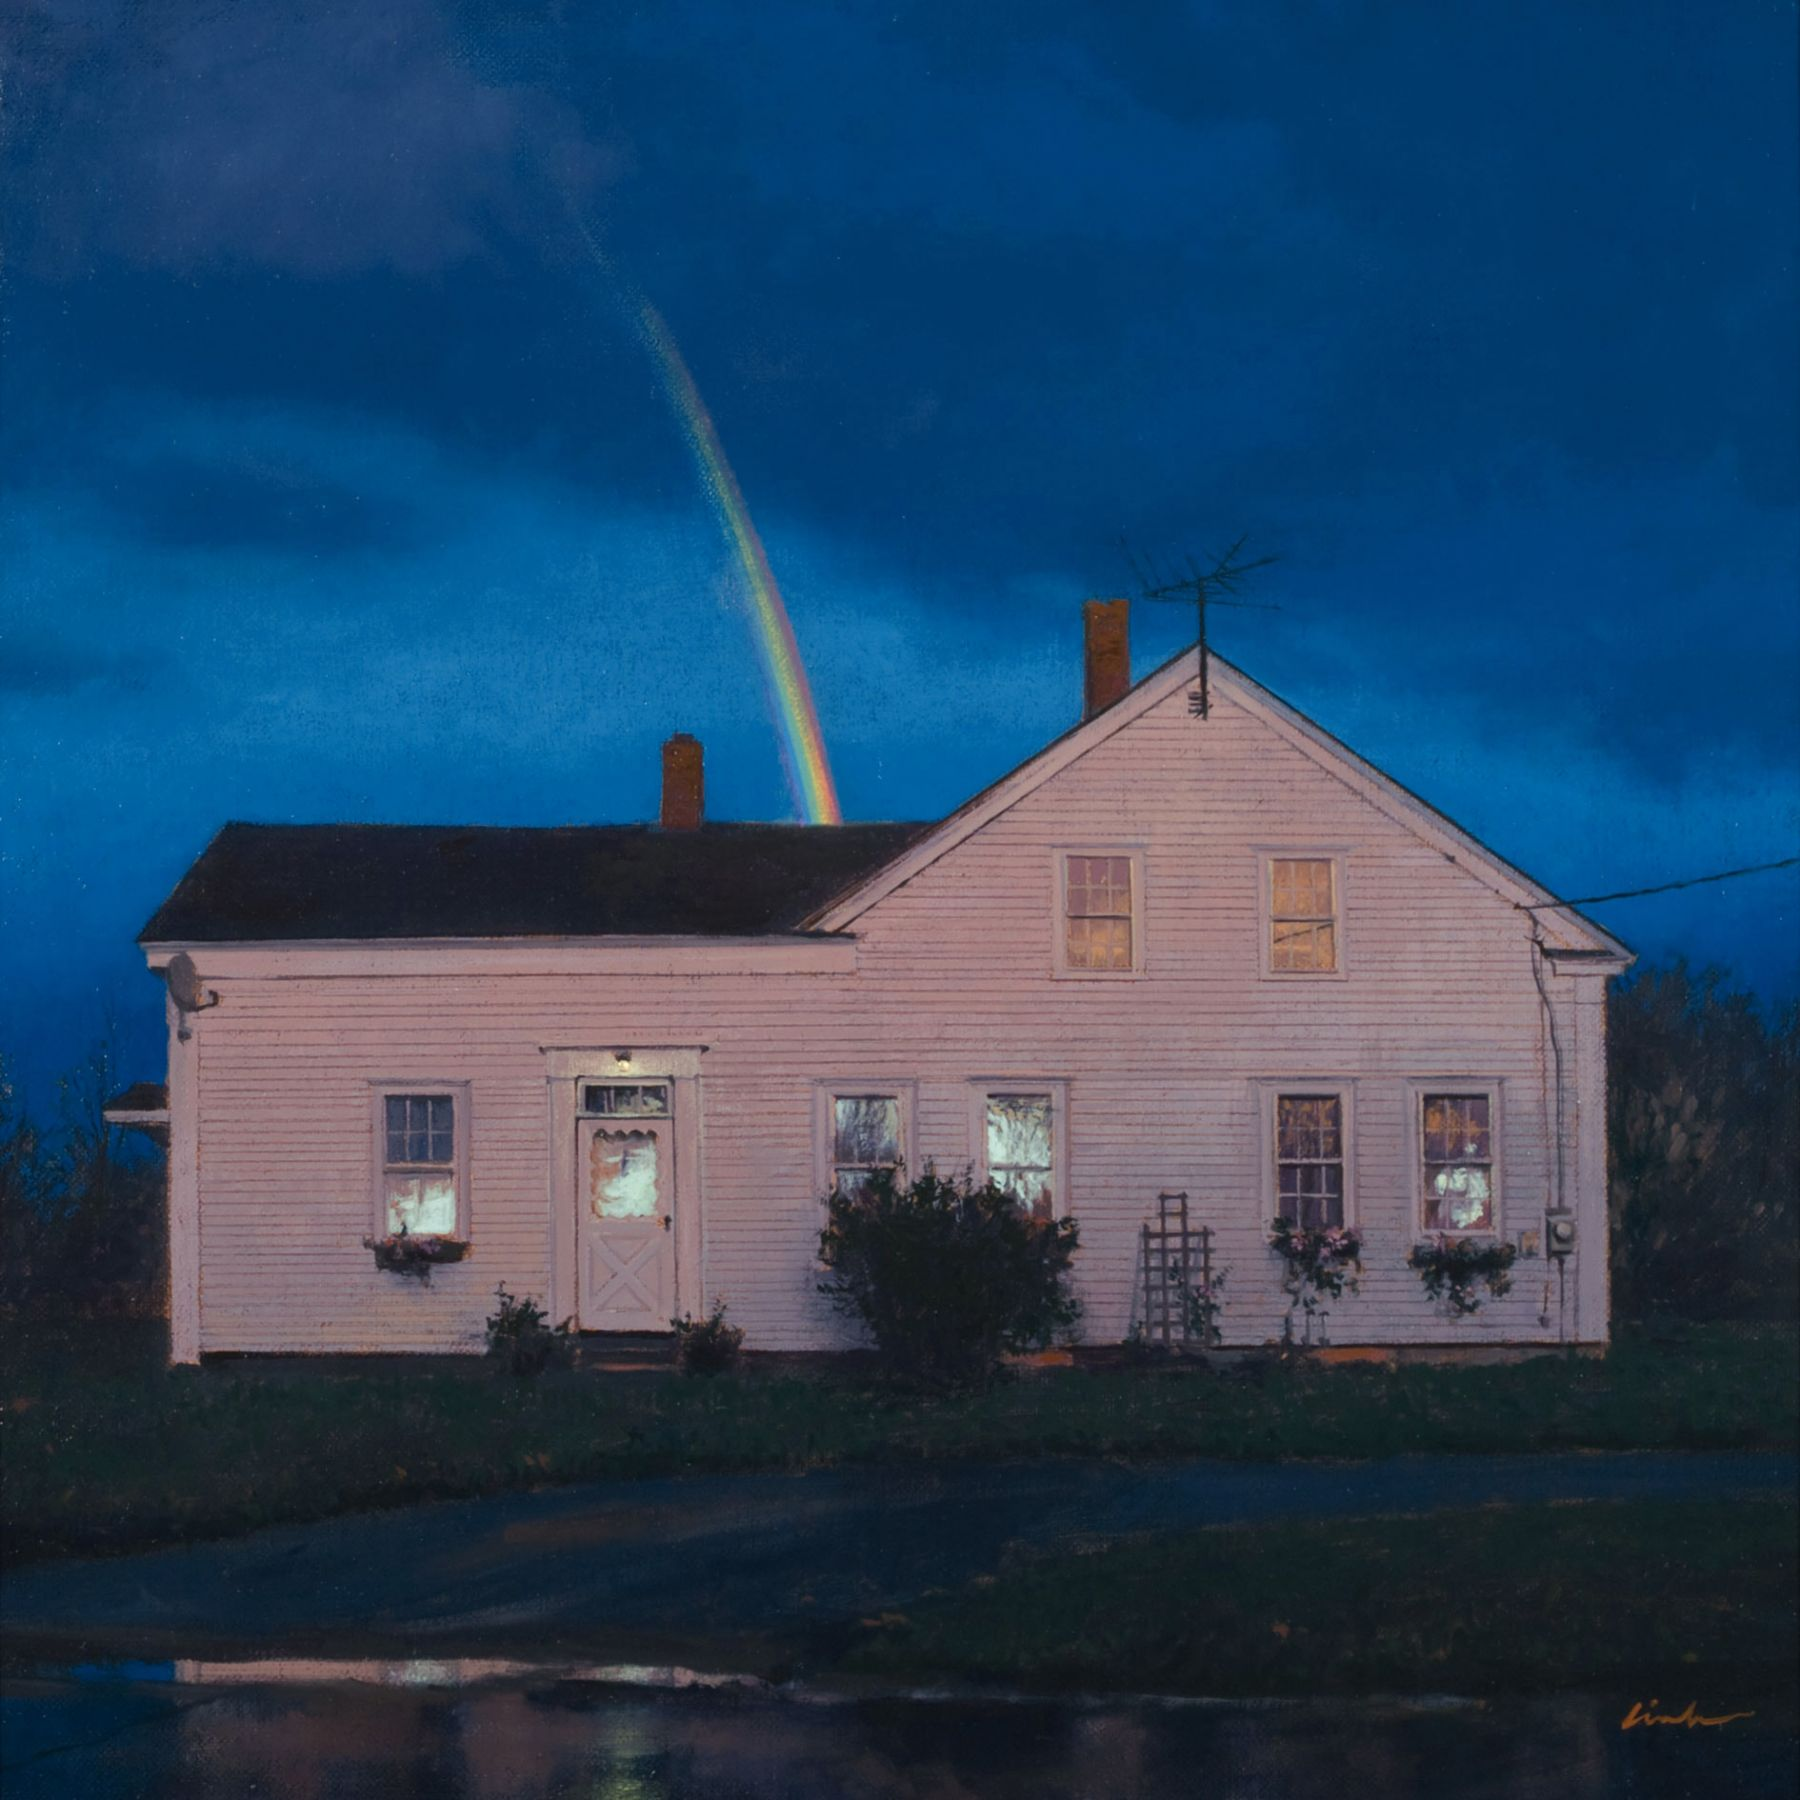 Linden Frederick, Prism (SOLD), 2007, oil on panel, 12 1/4 x 12 1/4 inches